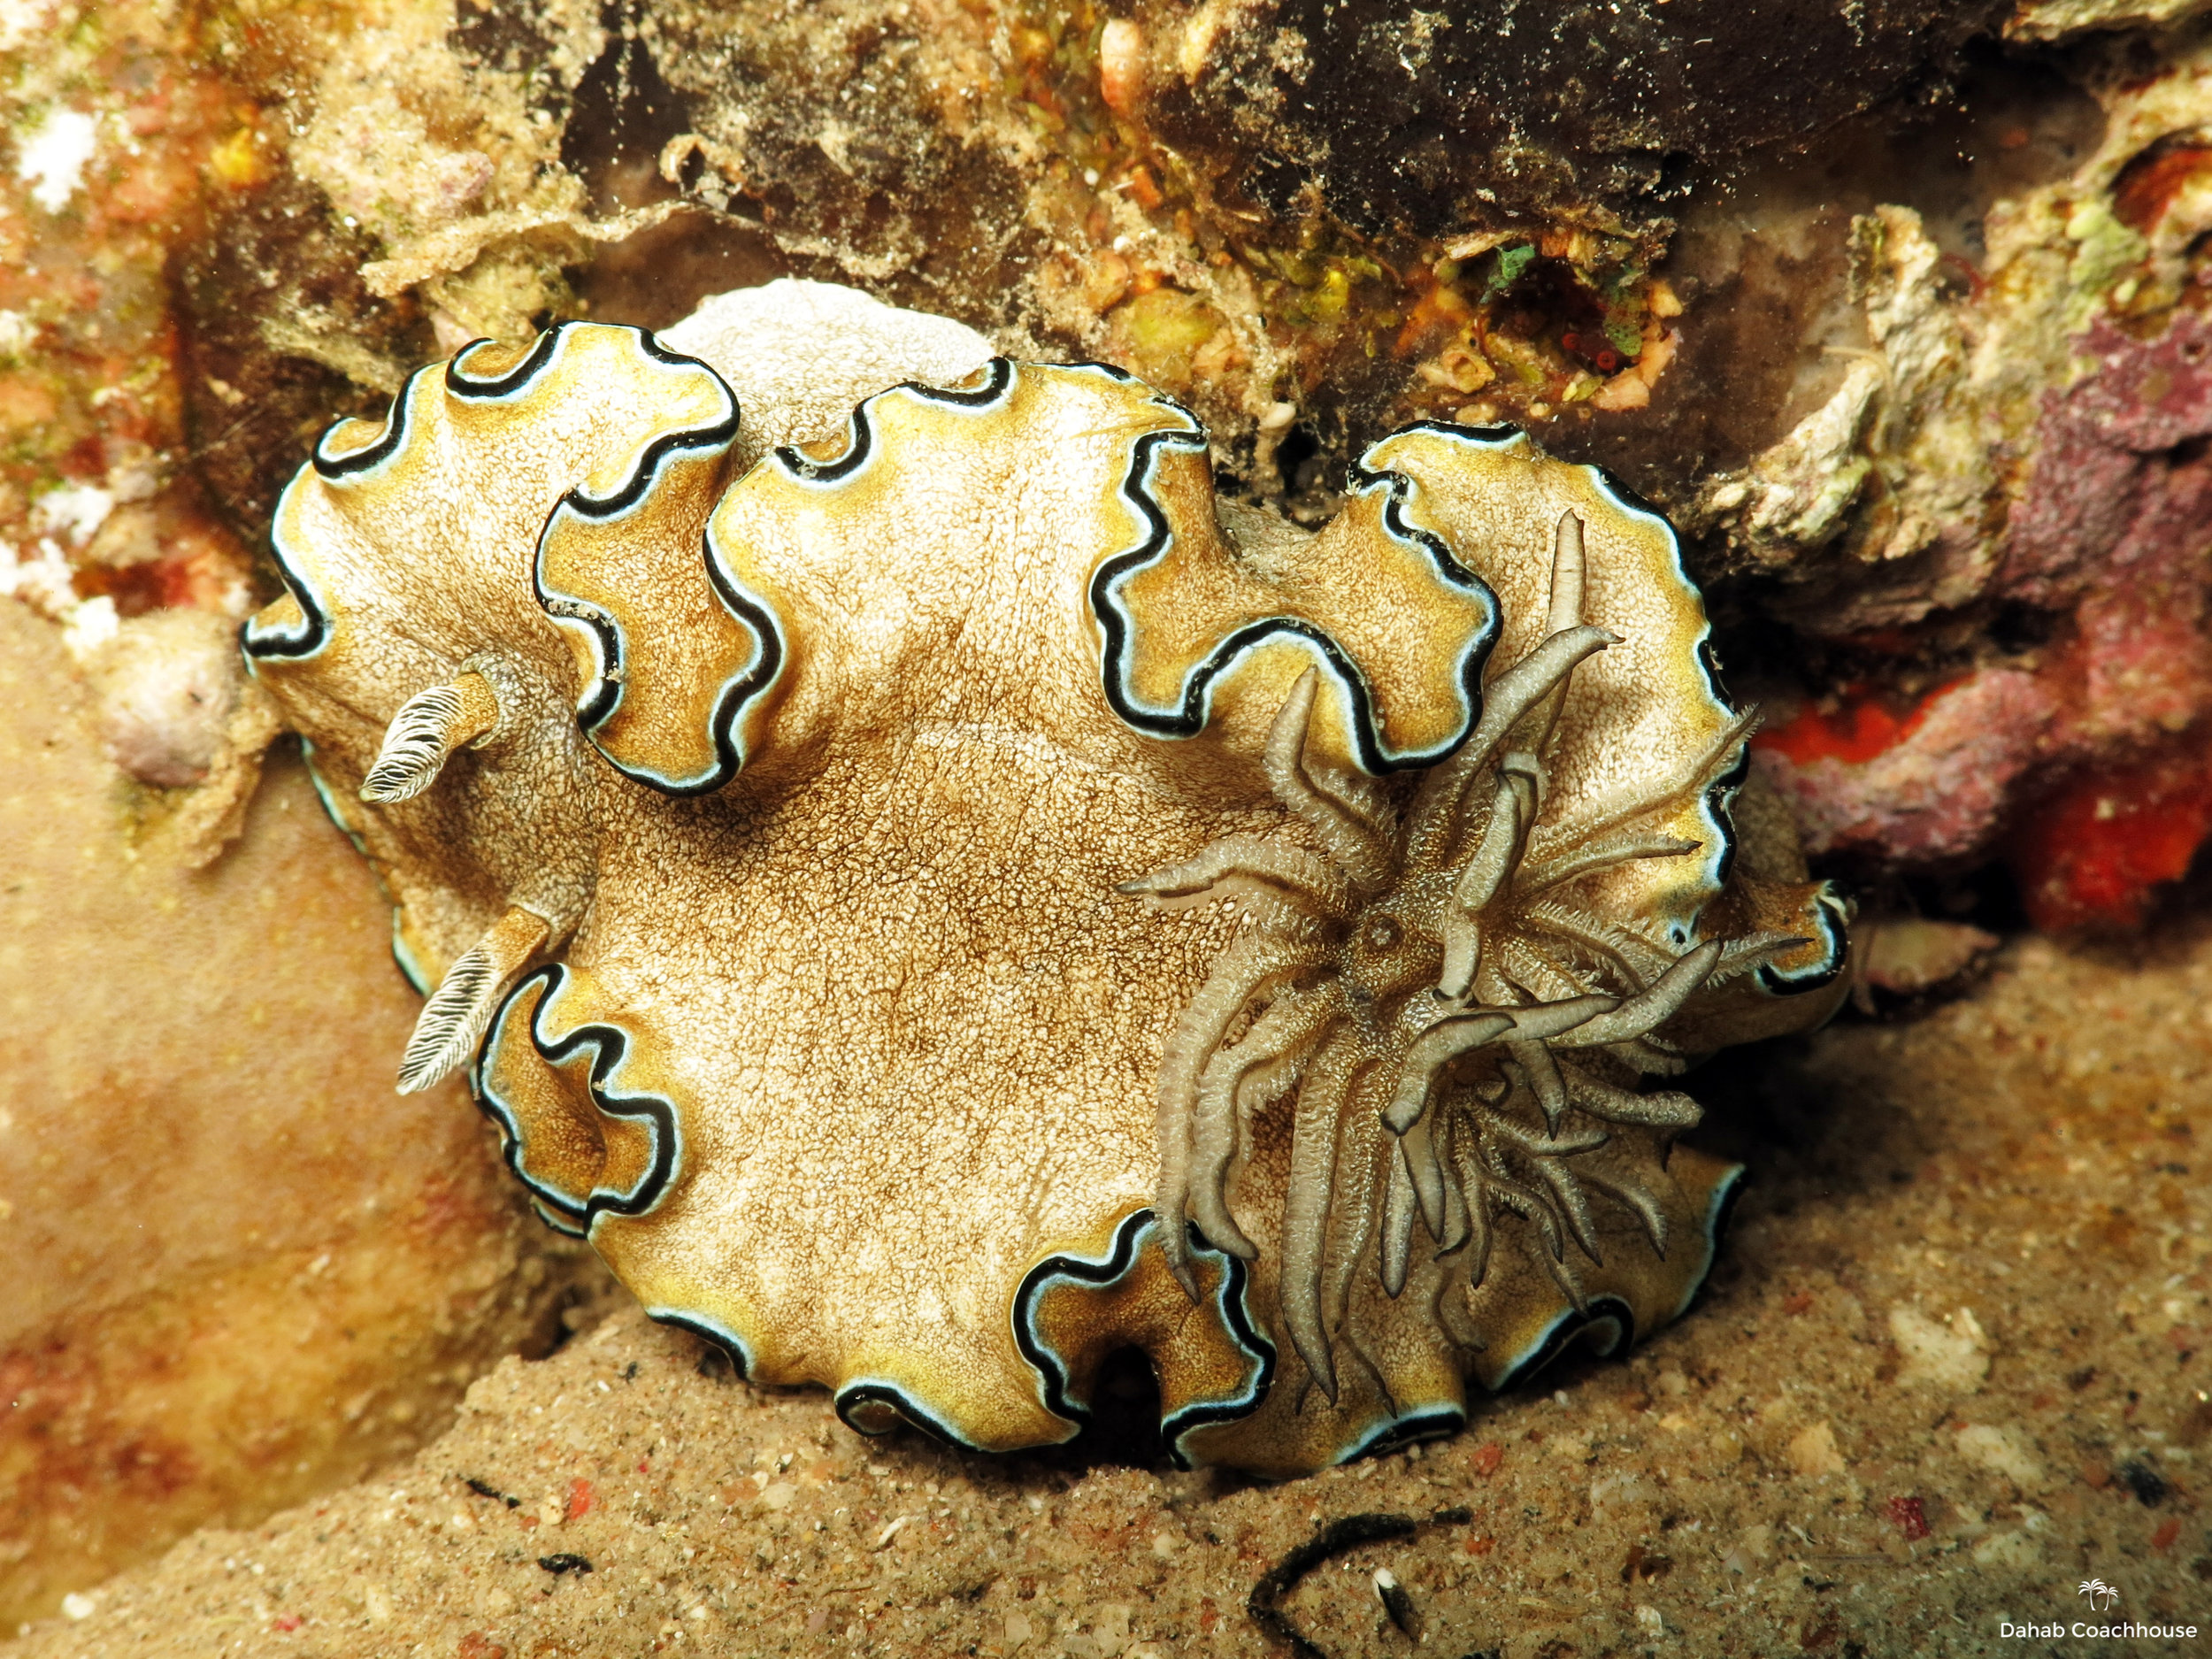 Dahab_Coachhouse_Egypt_Red_Sea_Diving_Beach_Accommodation_Holiday_Trave_Nudibranch.JPG